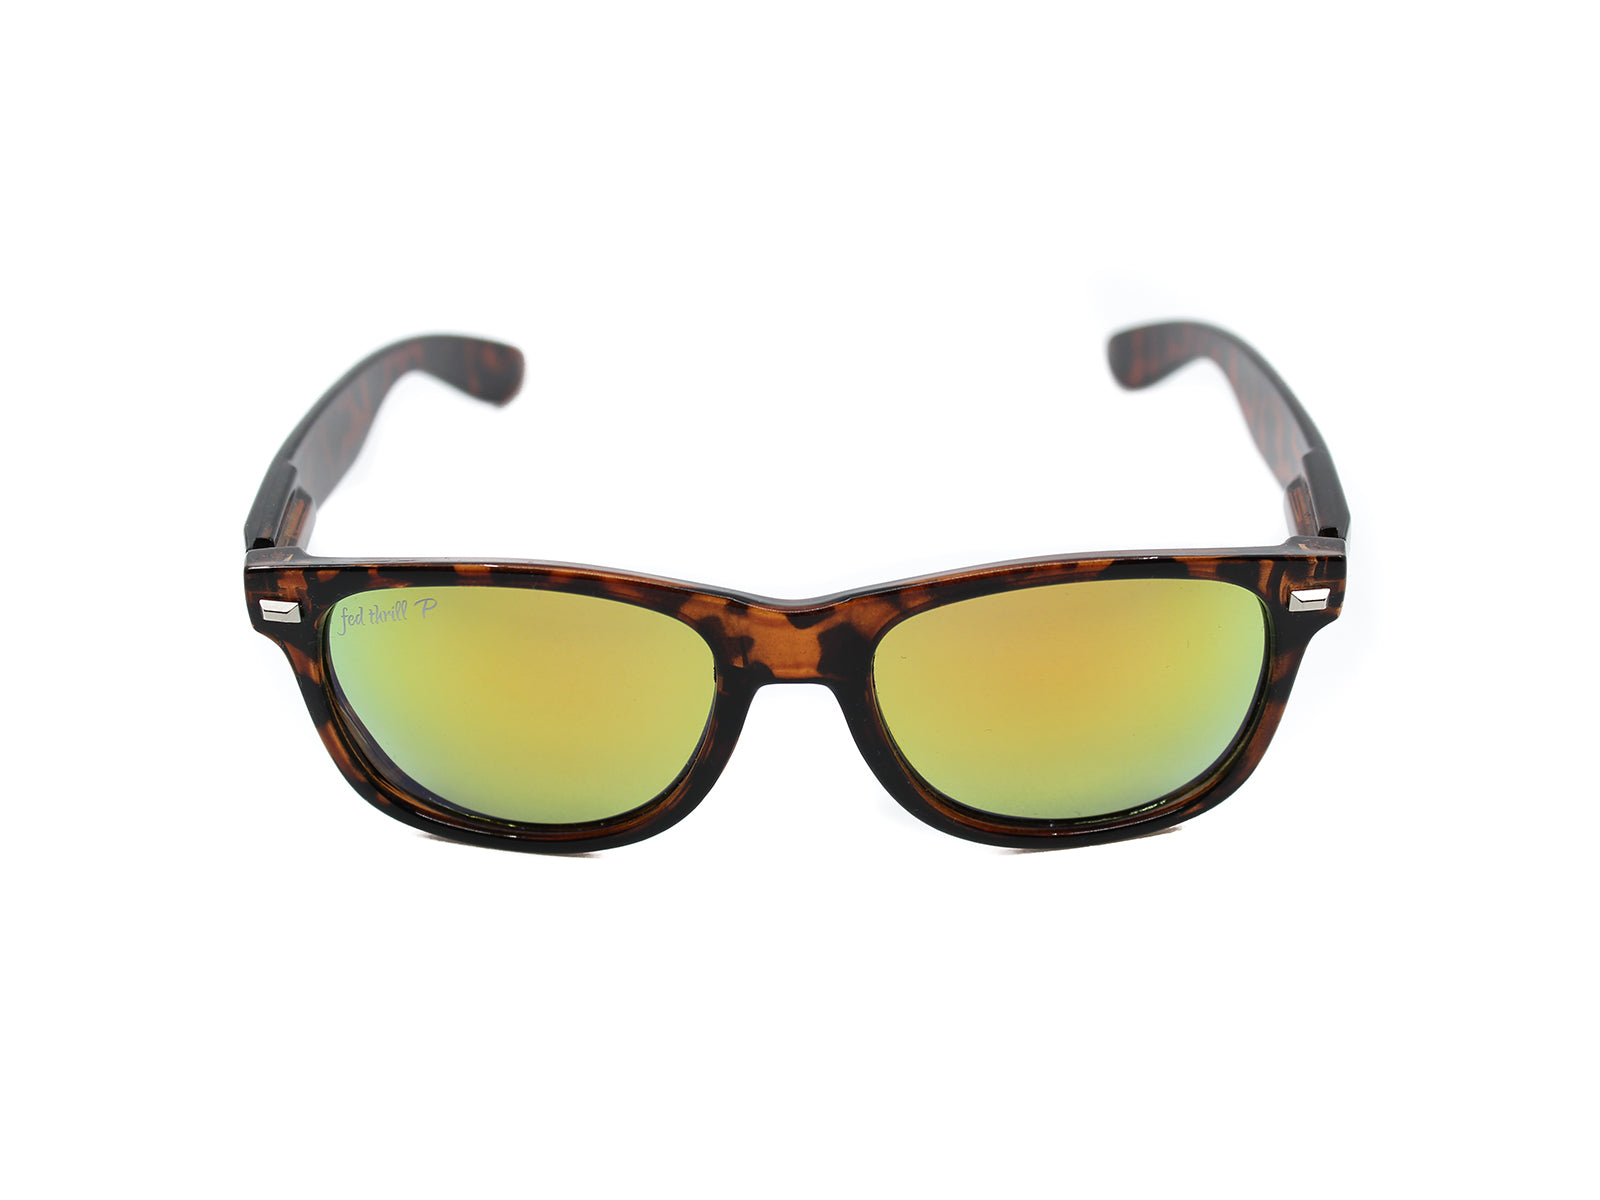 Fultons - Lowtides: Glossy Tortoise / Mirrored Orange Polarized